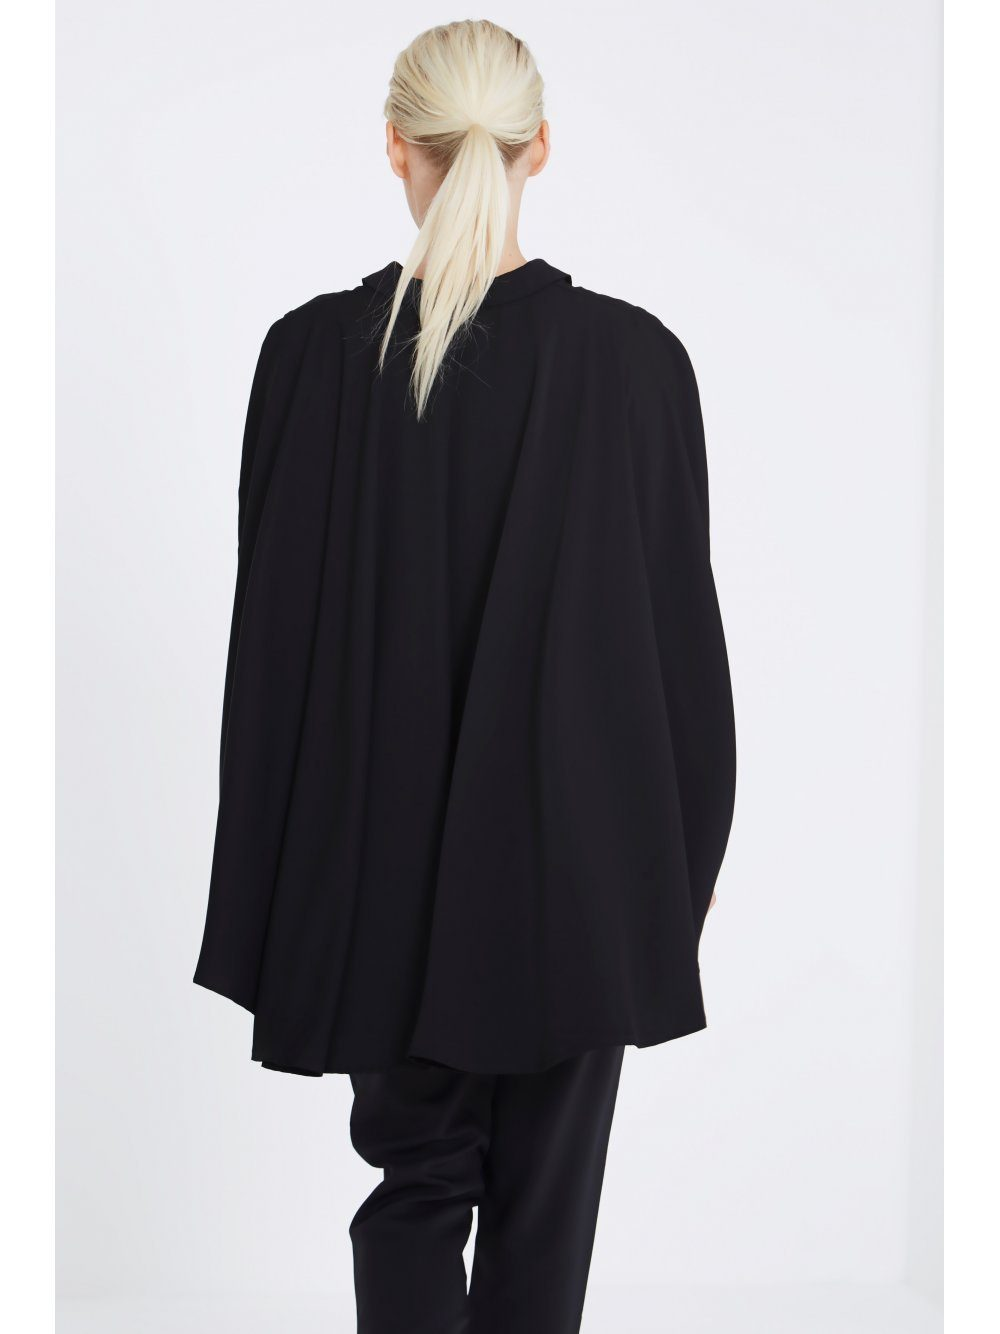 Black Cape Long Sleeve Shirt